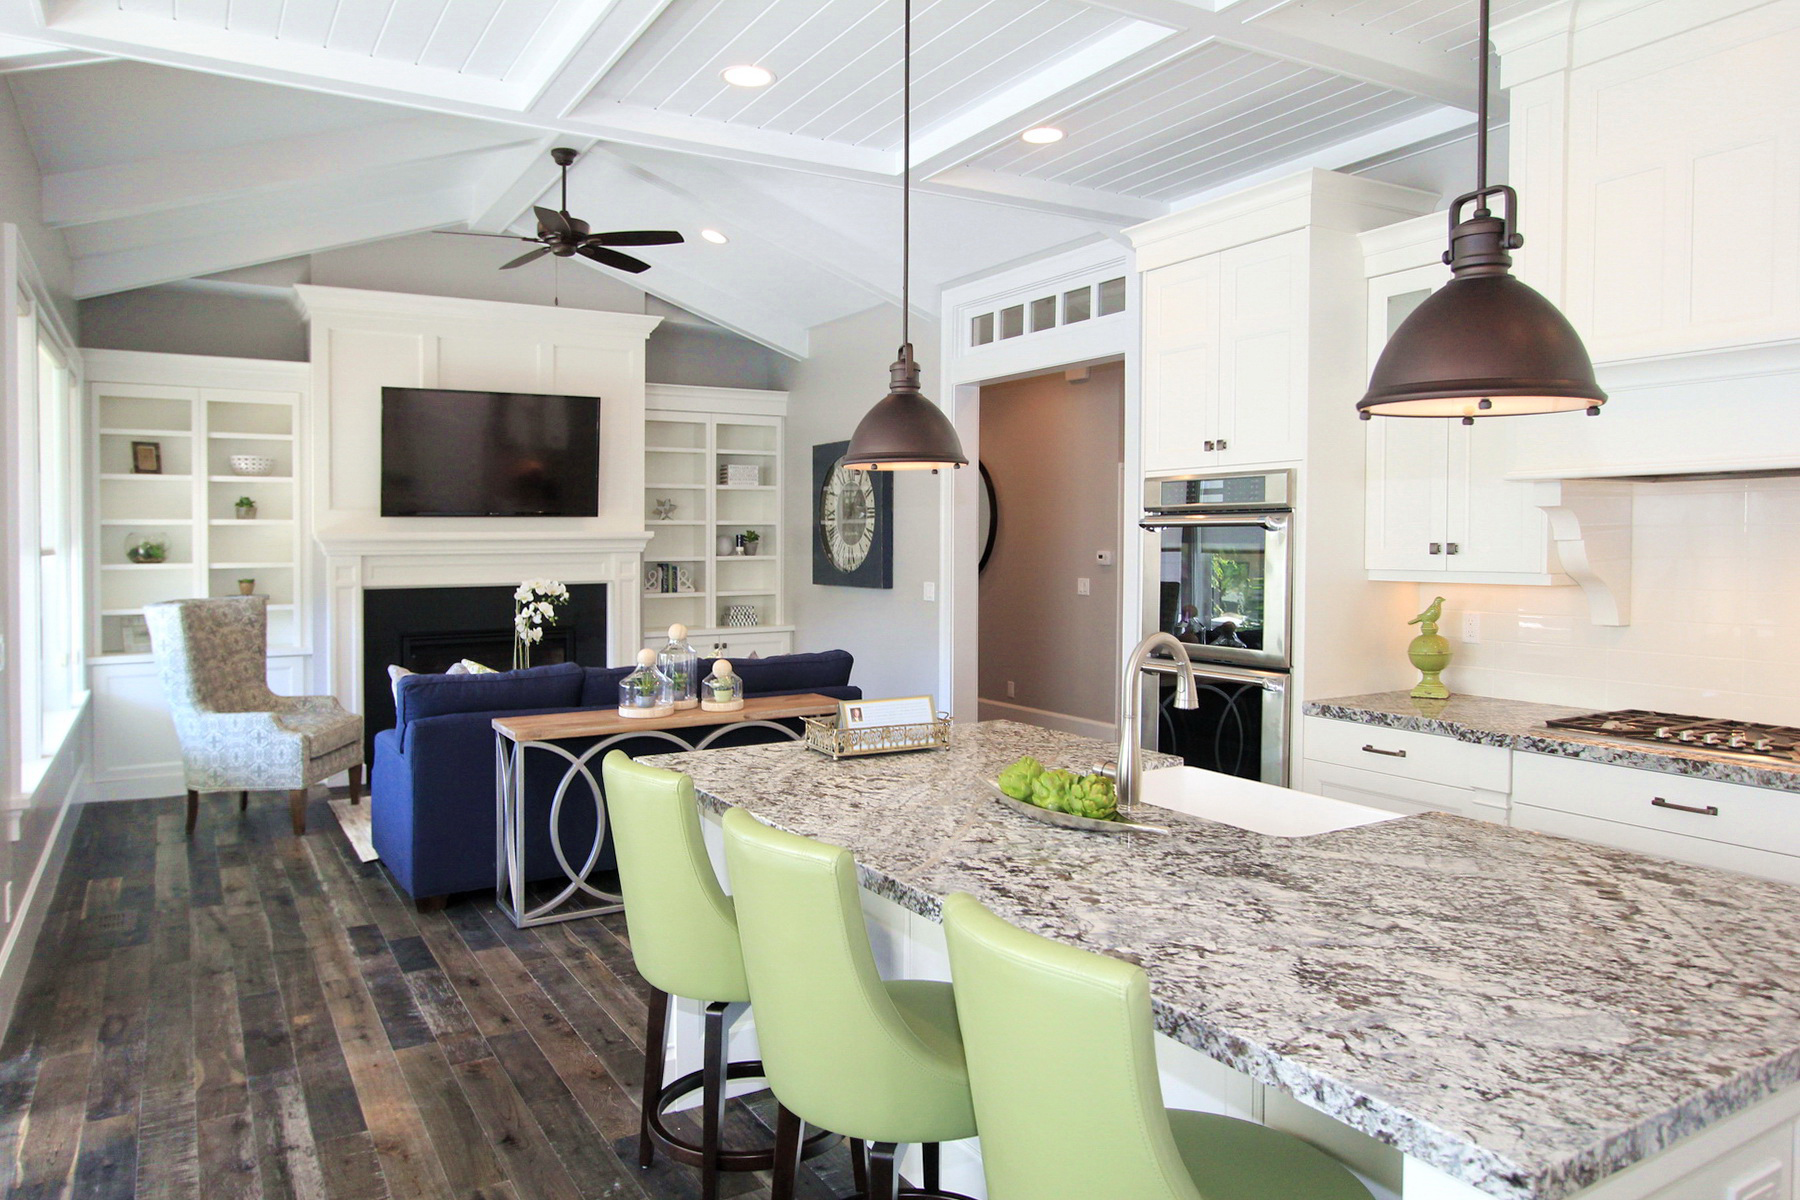 Island Lights Kitchen Lighting Options Over The Kitchen Island